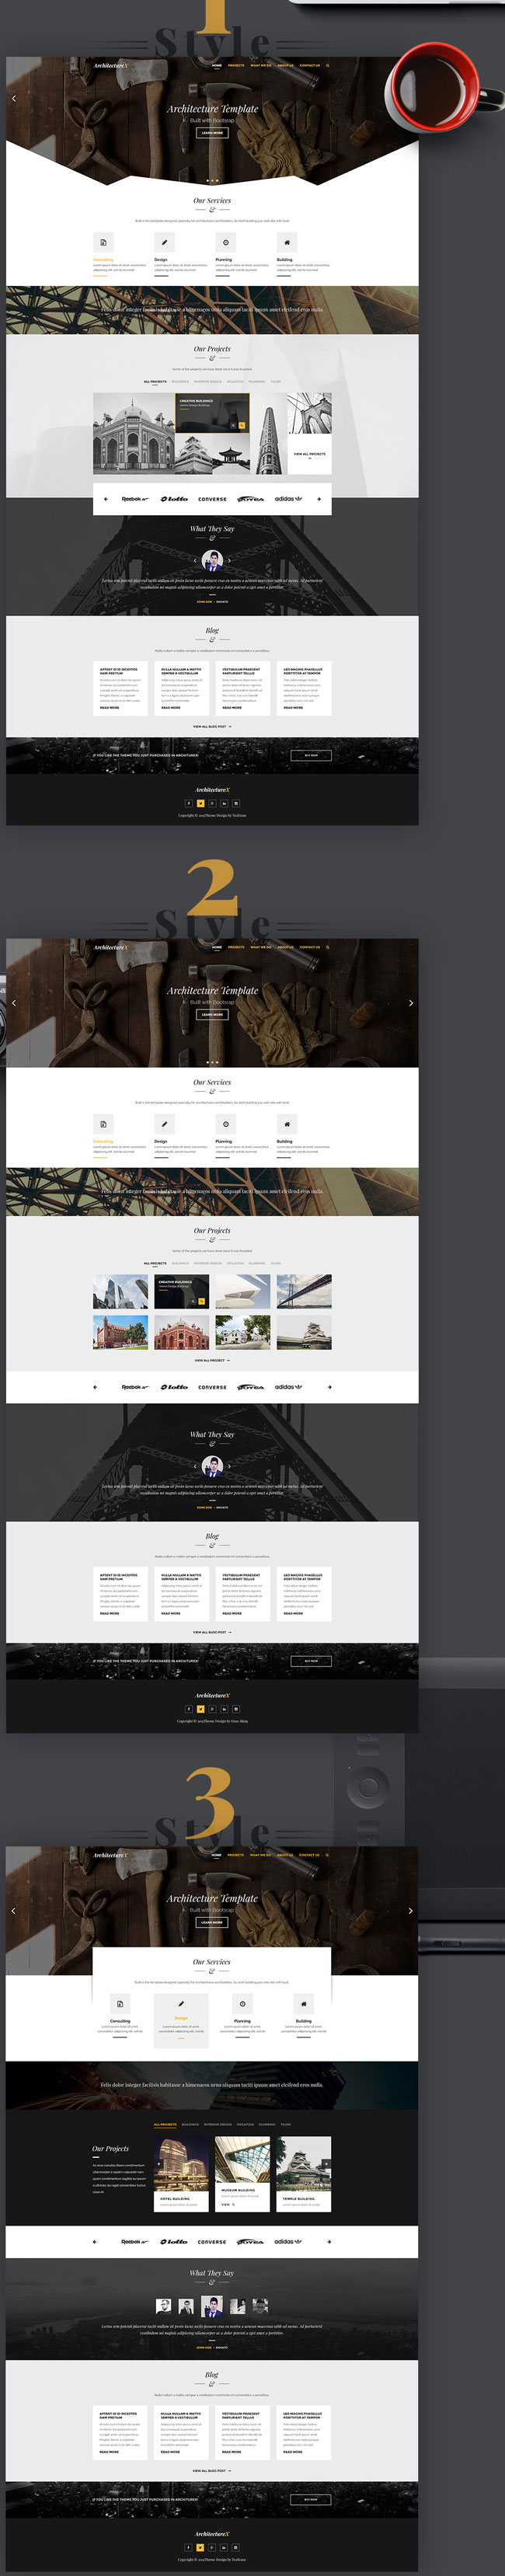 ArchitectureX - Free PSD Architecture Landing Page Template